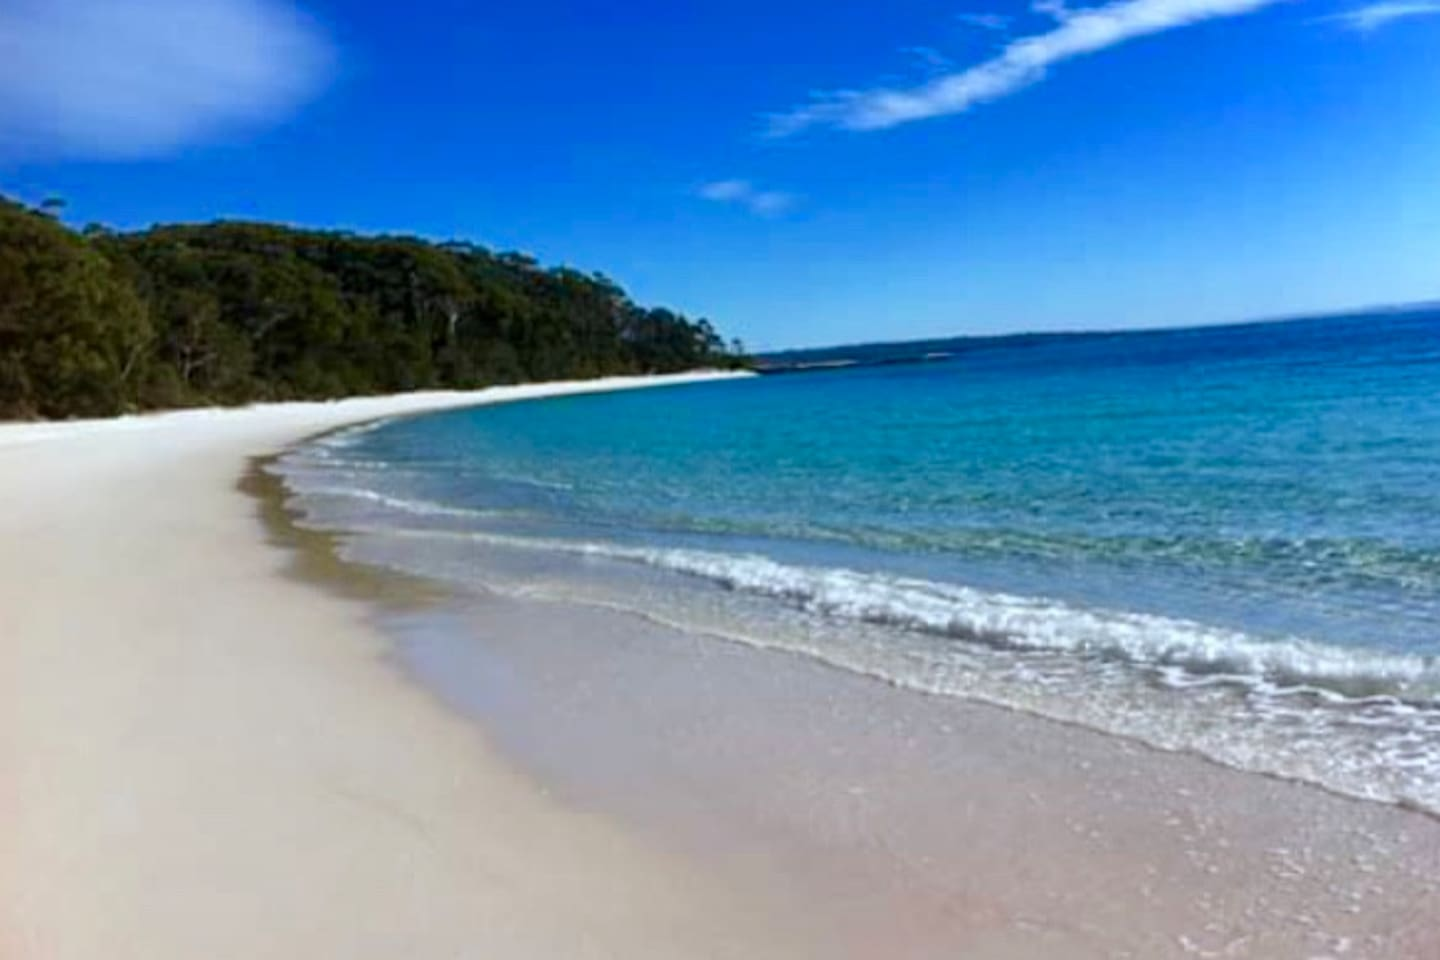 Beach in Booderee National Park - Ten minutes from the driftwood shack